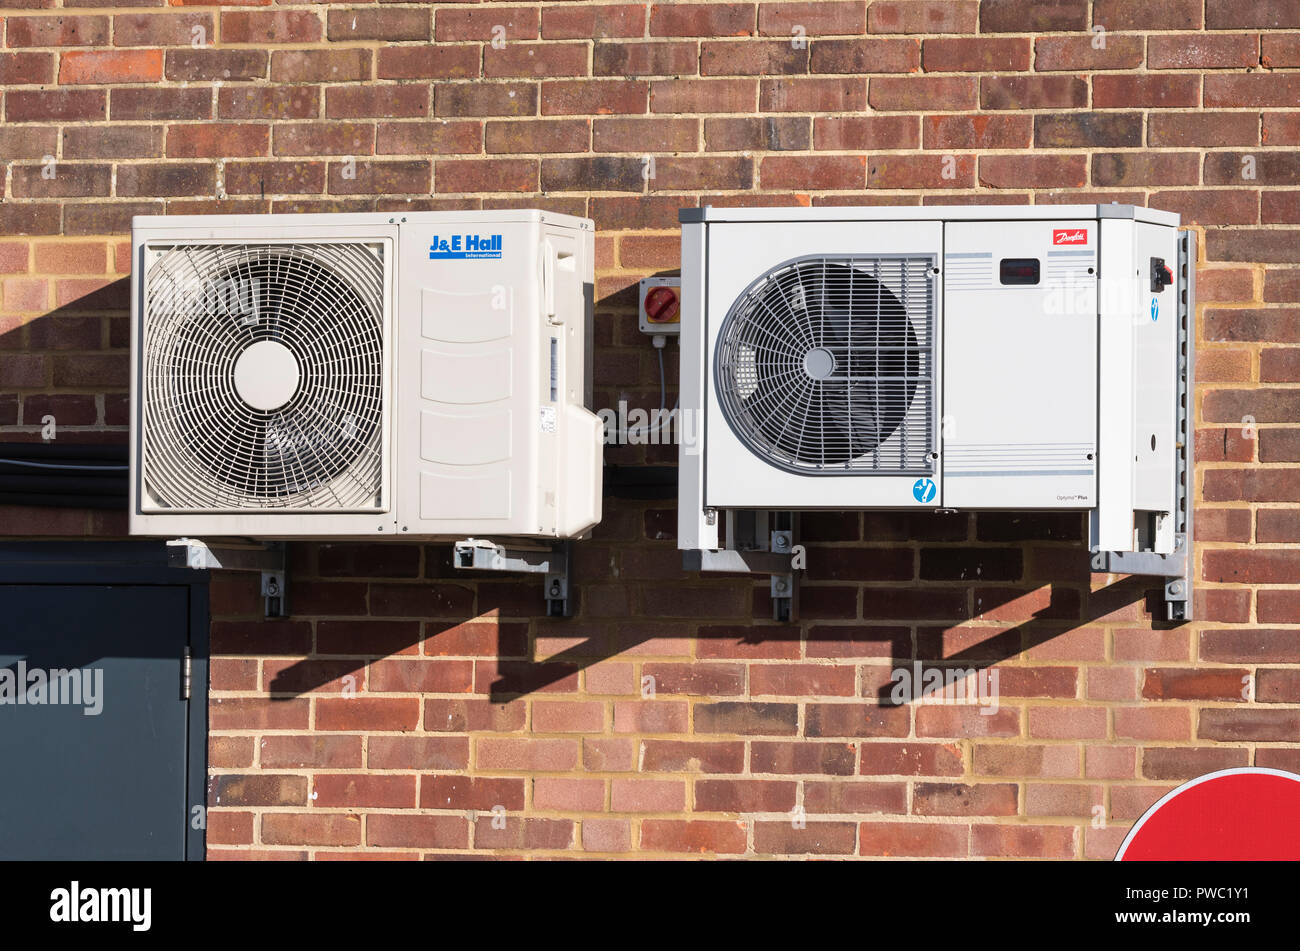 Pair of small commercial air condensing refrigeration units for shop air conditioning mounted on an outside wall in the UK. - Stock Image